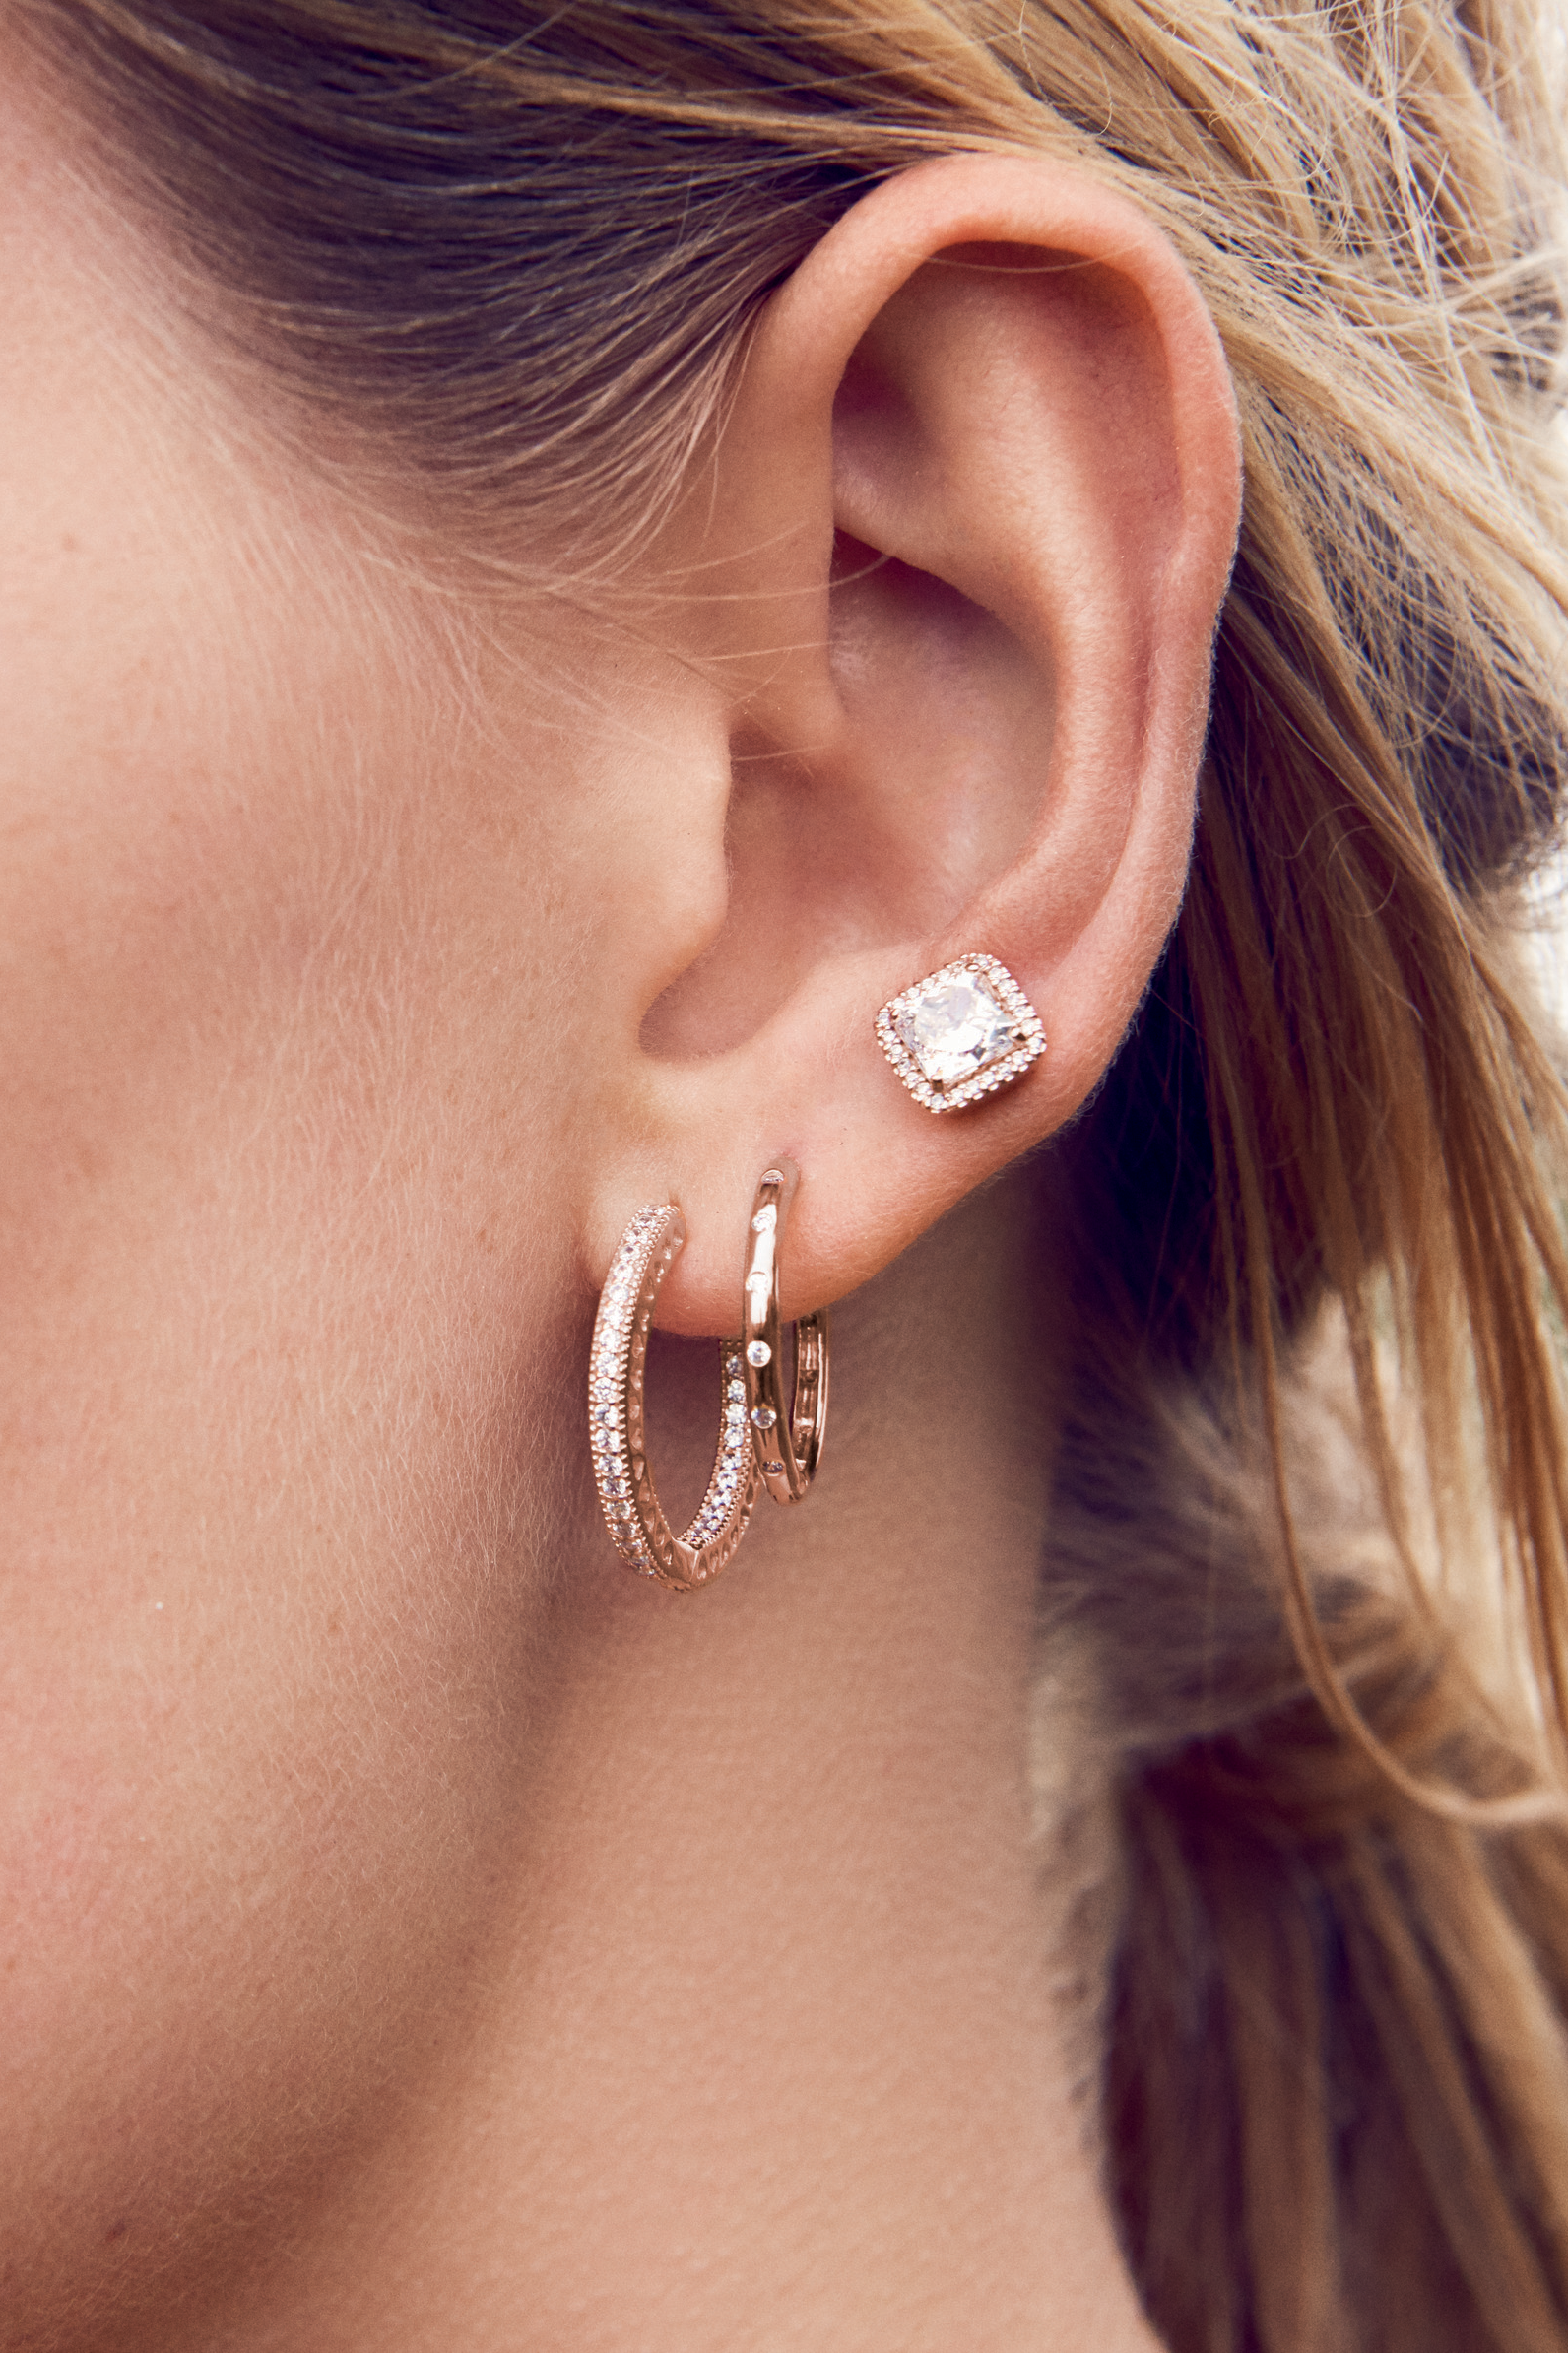 58cb9a608 Mix and match PANDORA Rose earrings for a classy look this season. Combine  hand-finished hoops and shimmering studs - the perfect day-to-night look!